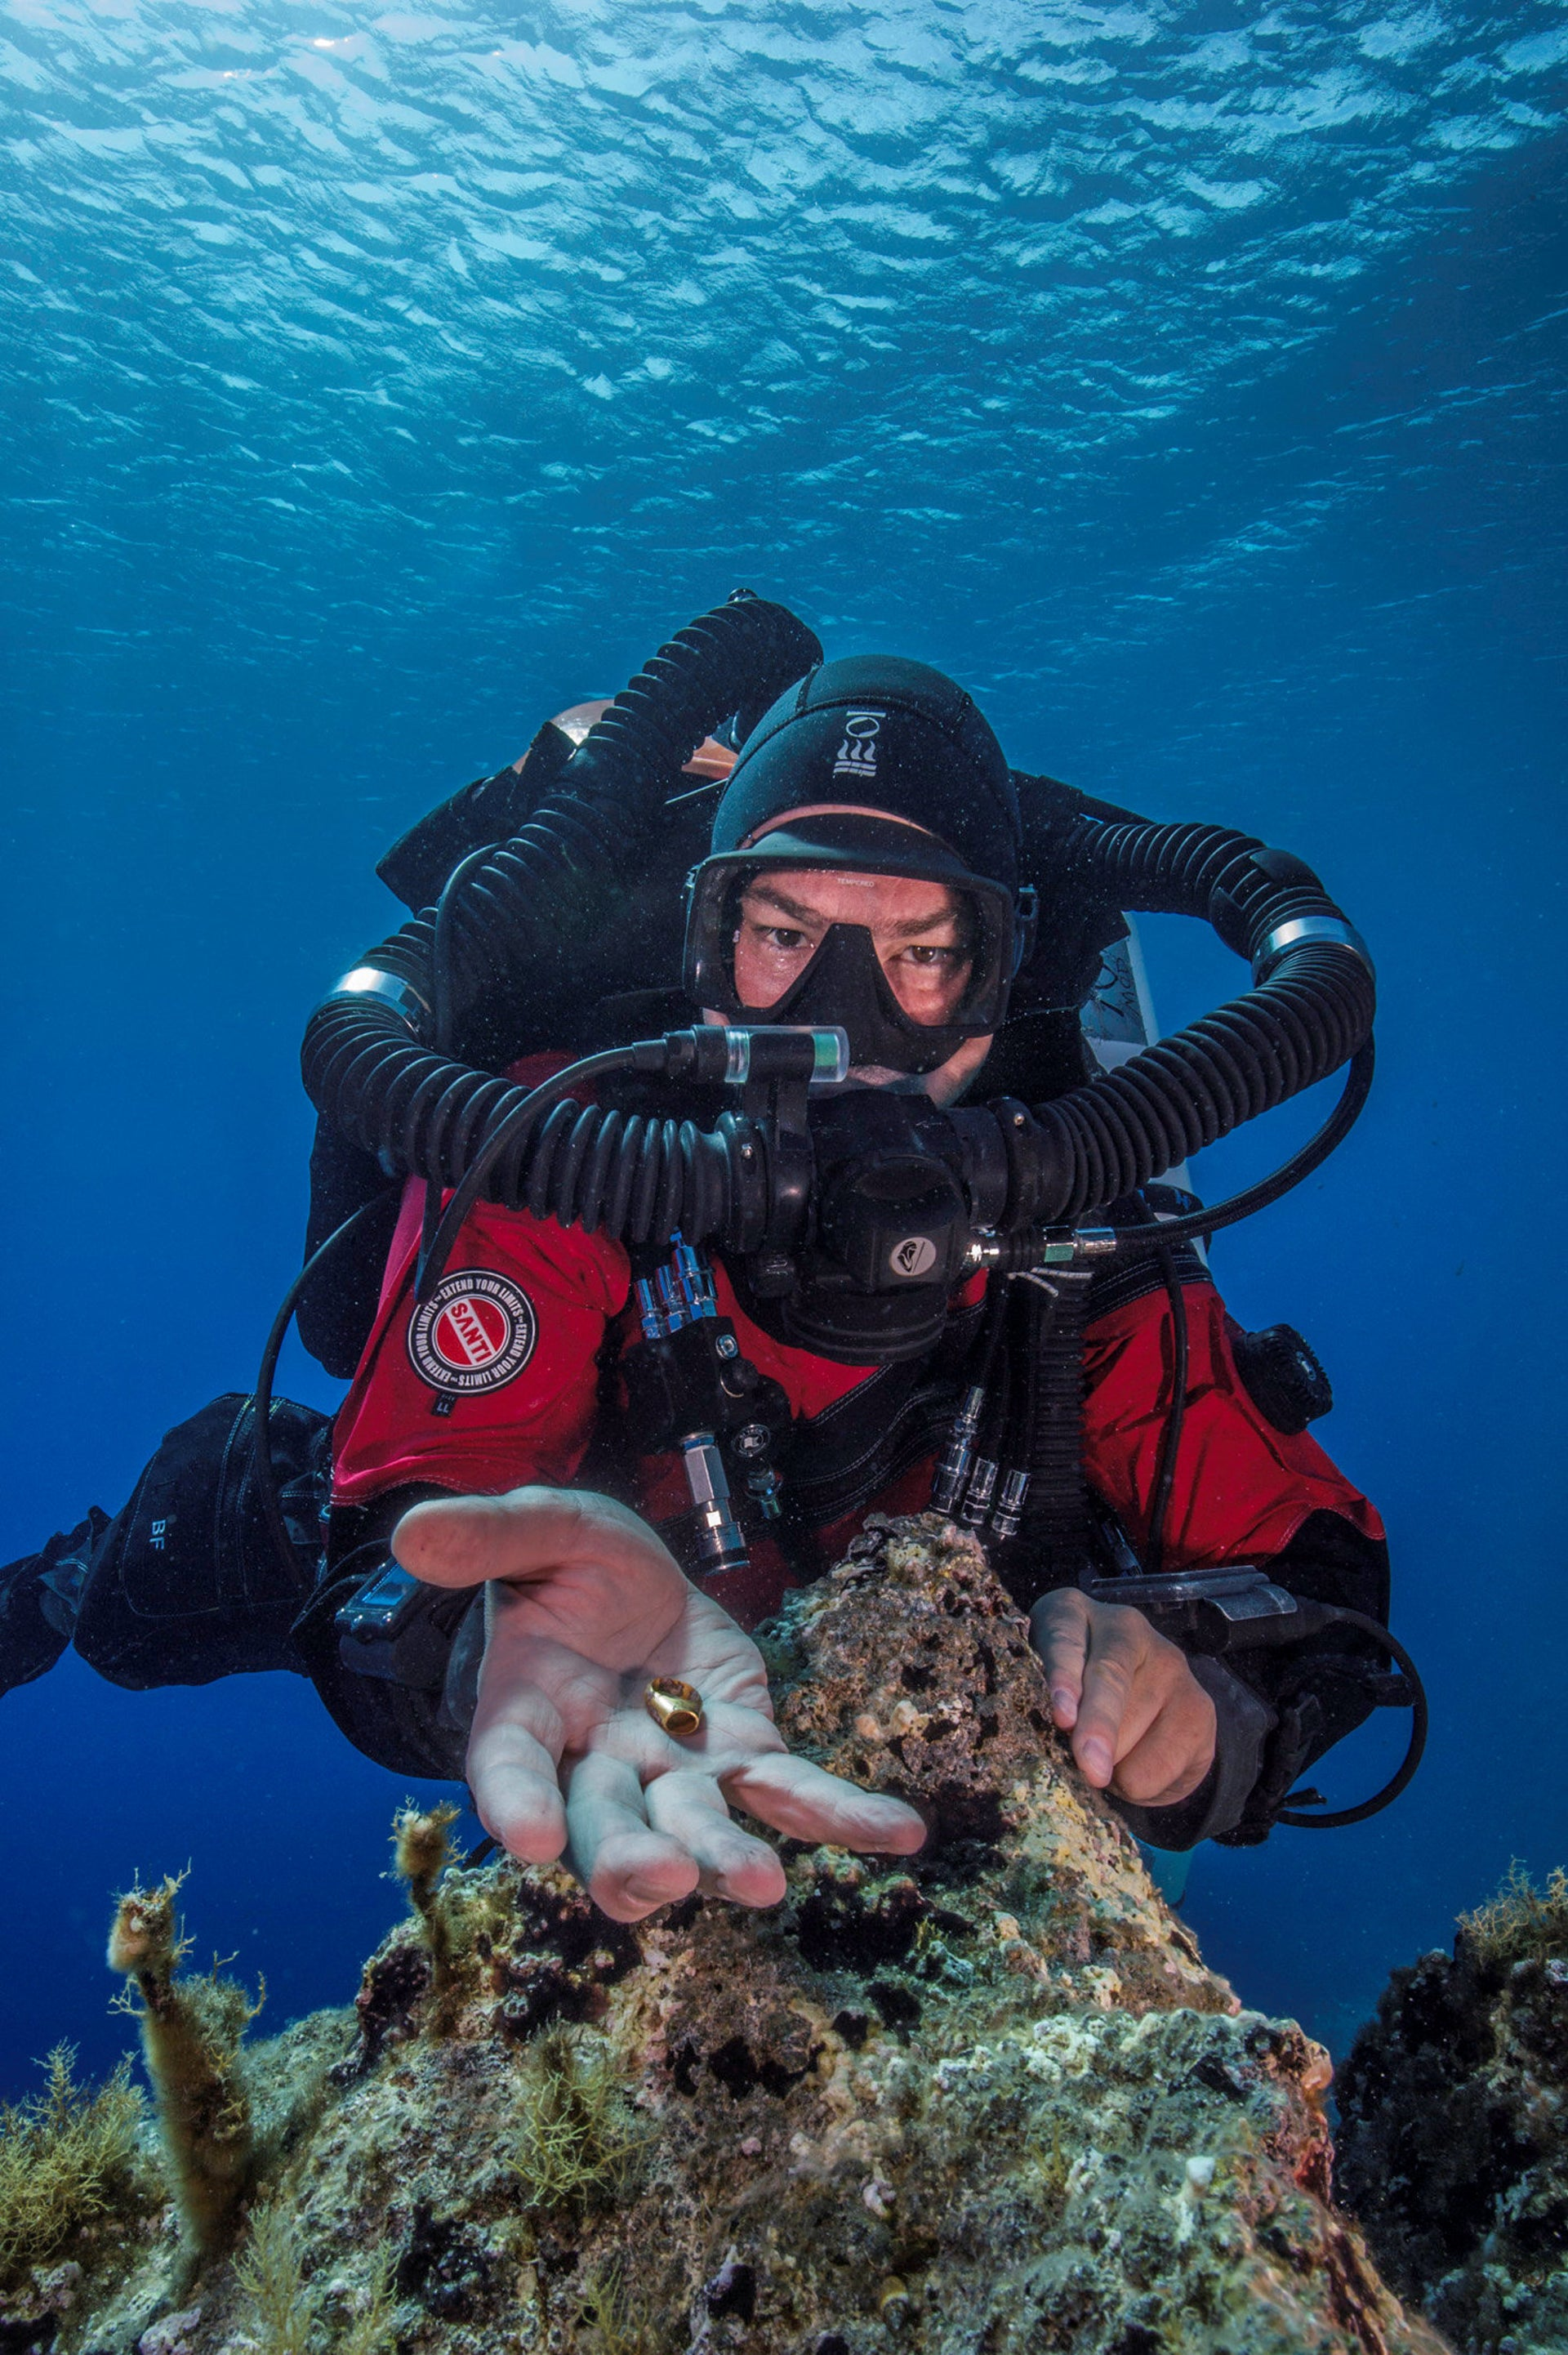 Foley lifting a gold ring found on the bottom of the sea